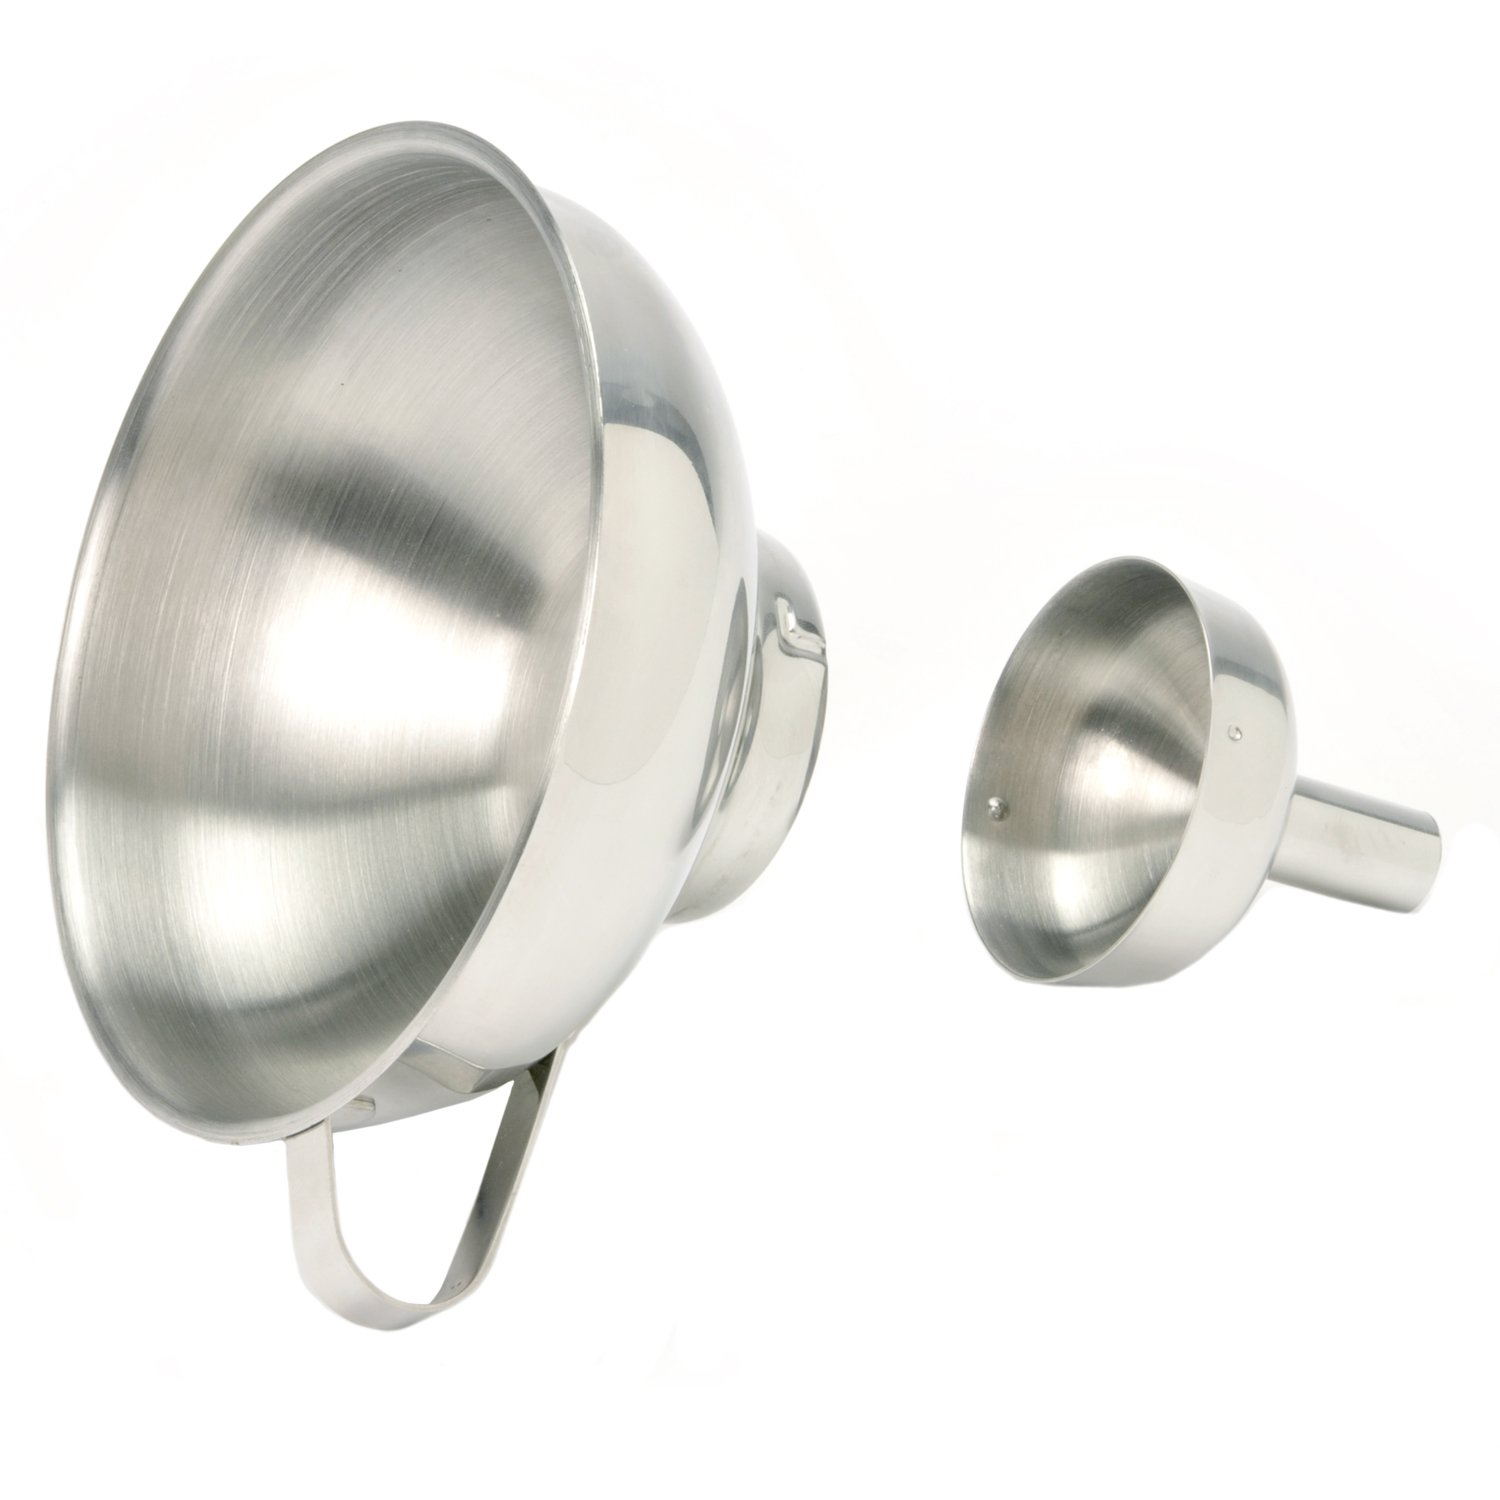 Norpro Stainless Steel Funnel with Removable Spout